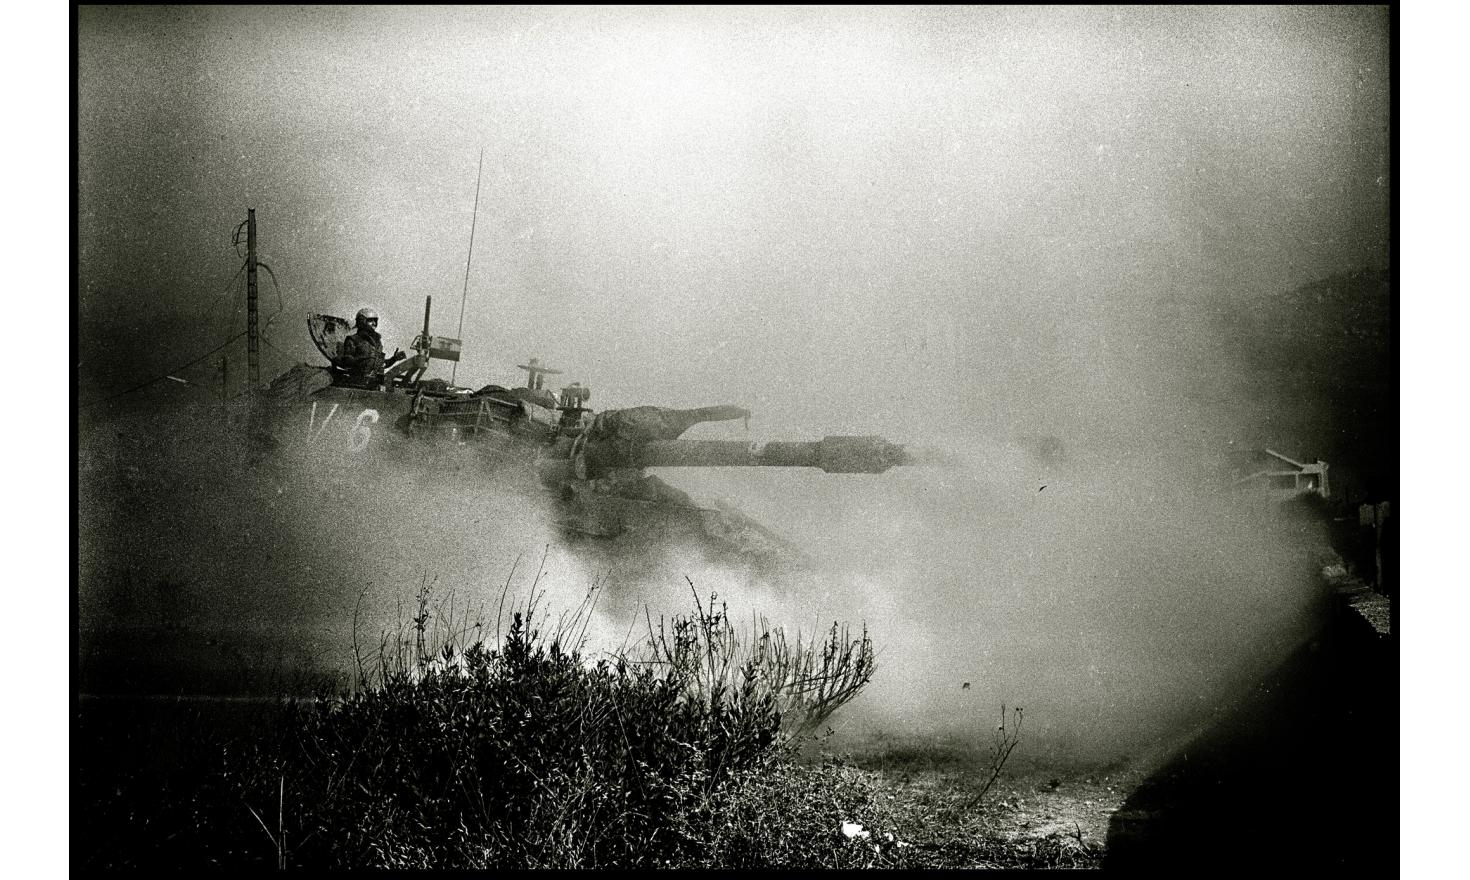 Israeli invasion of Lebanon, Front line. Peace in Galilee Operation. Southern Lebanon. June 6- July 16, 1982